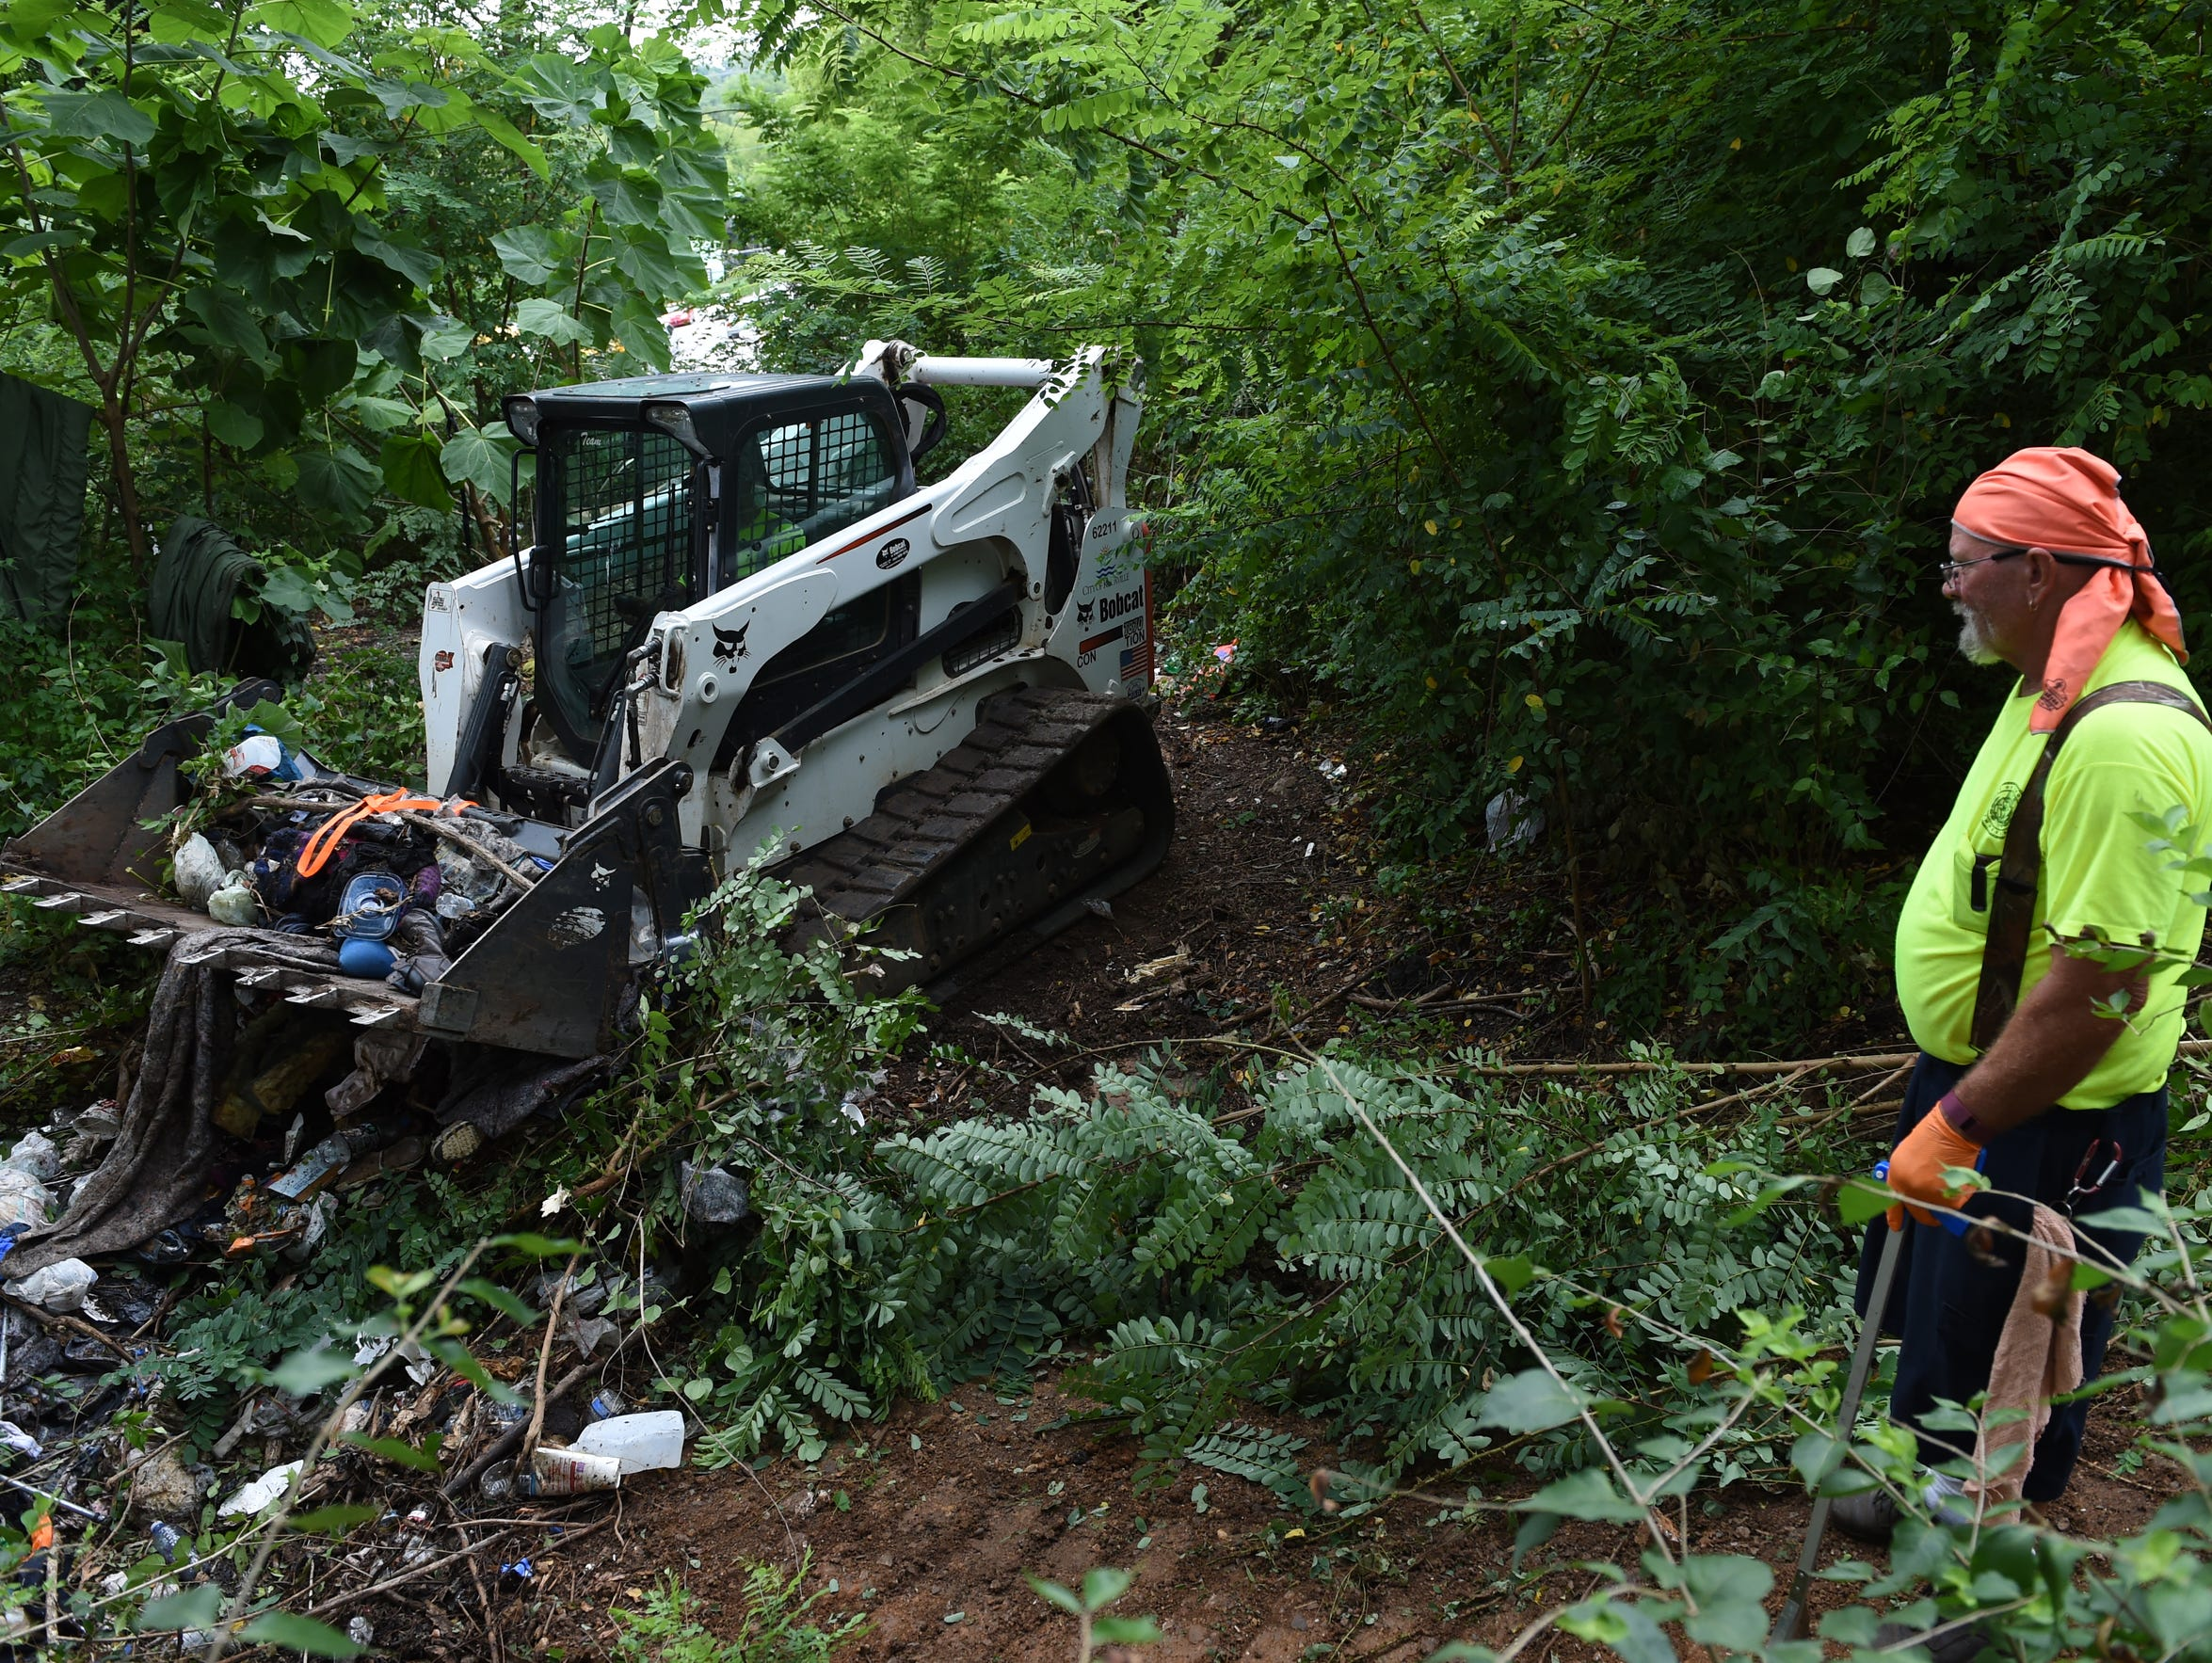 City Of Knoxville Public Works Crews Clears A Camp